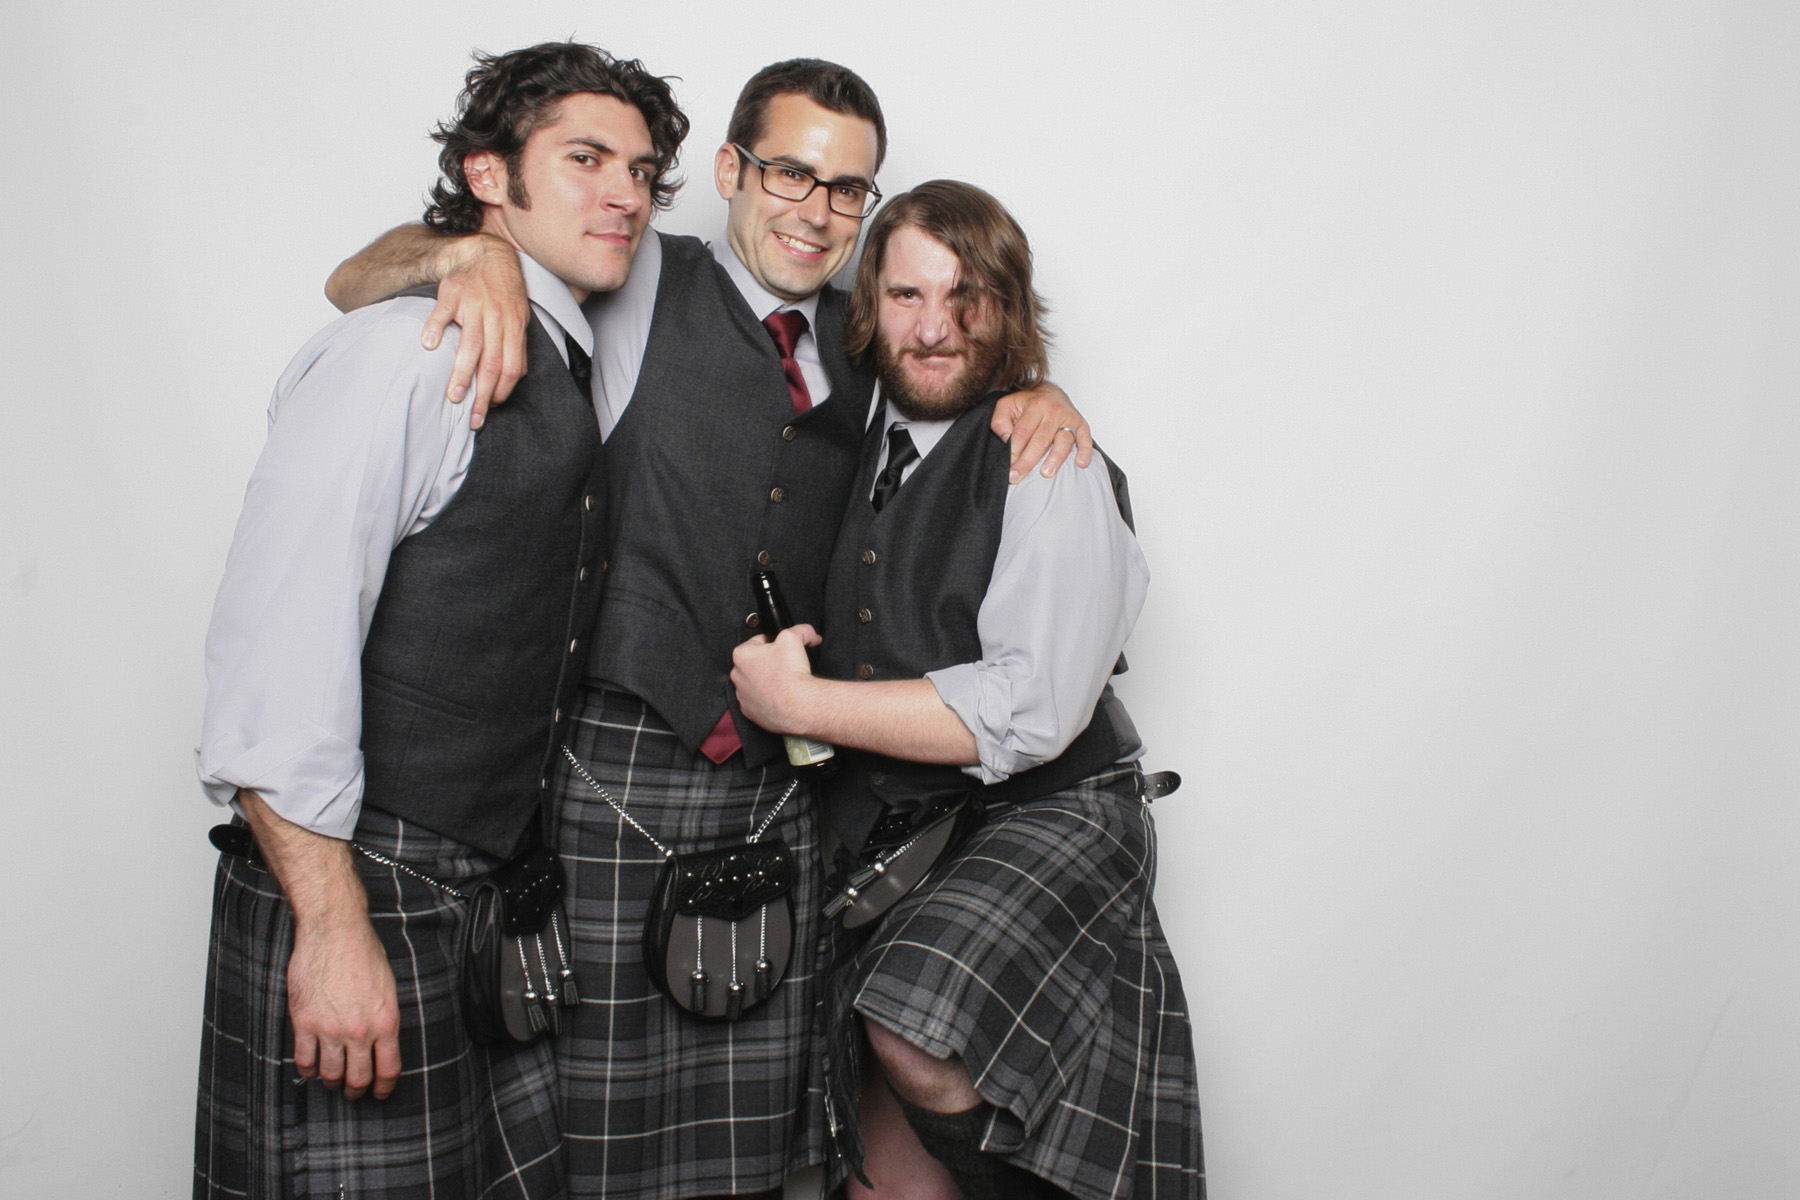 Men from the grooms party wearing Scottish kilts pose together in the photo booth.